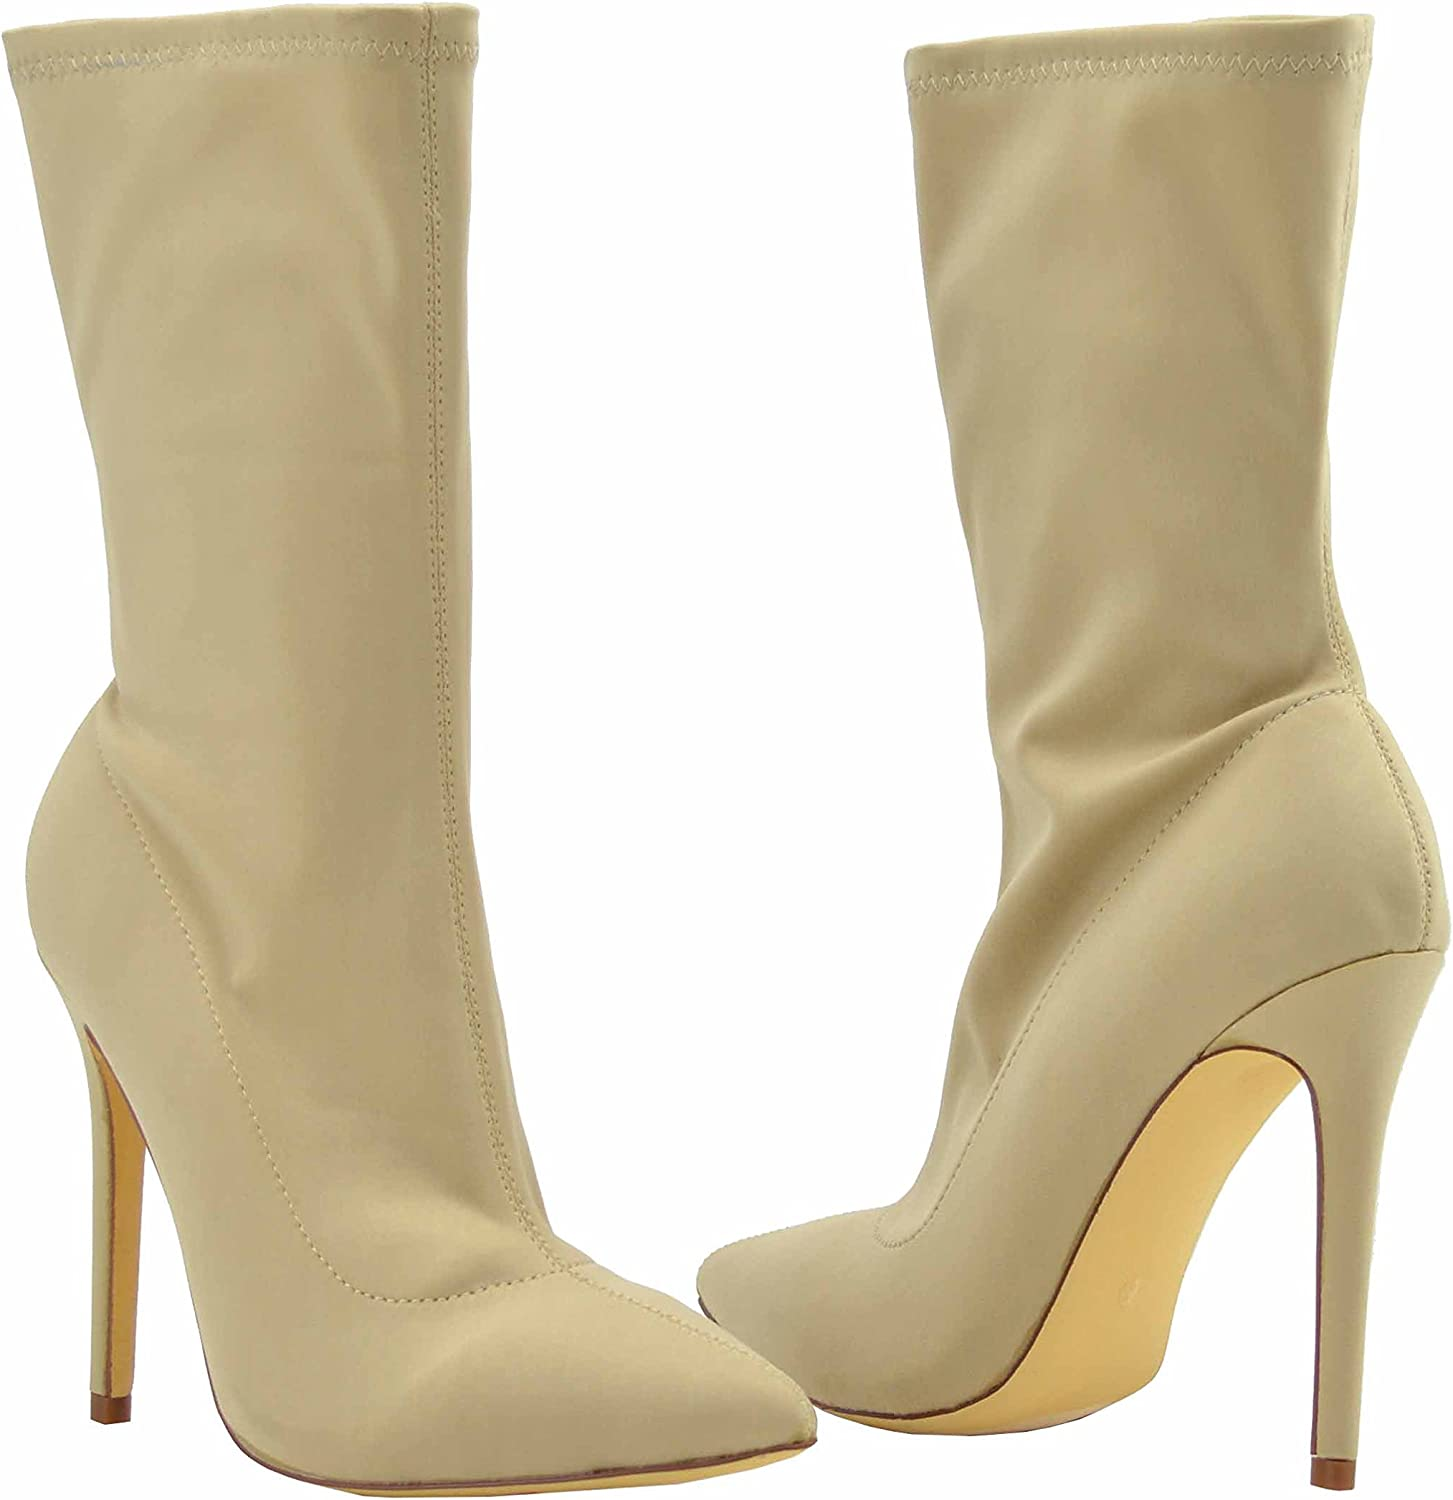 Olivia Jaymes Women's Pointed Toe Lycra Pull On High Heel Stiletto Ankle Boots